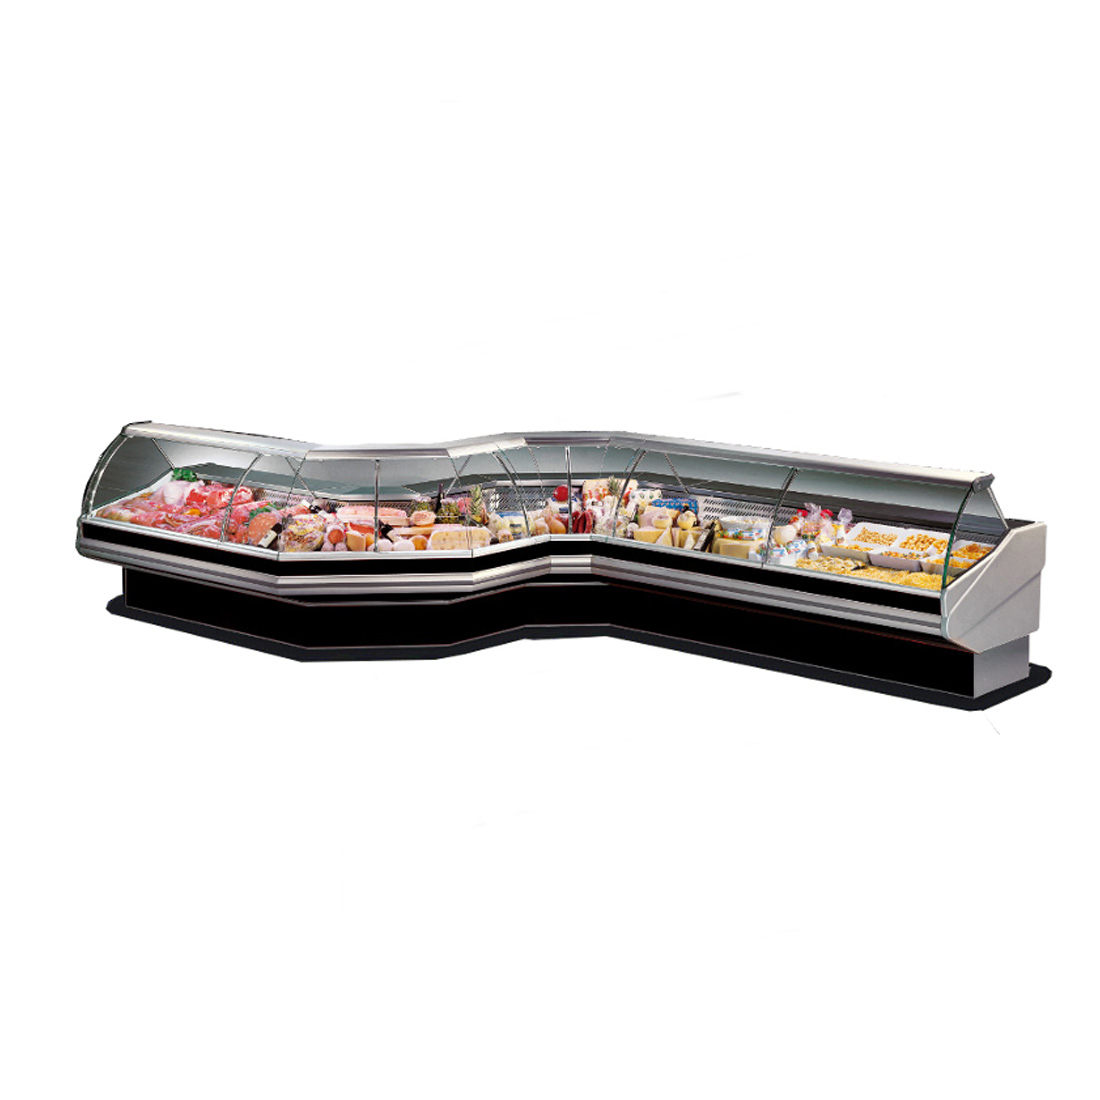 PAN2500 - Curved front glass deli display 2500x1140x1260